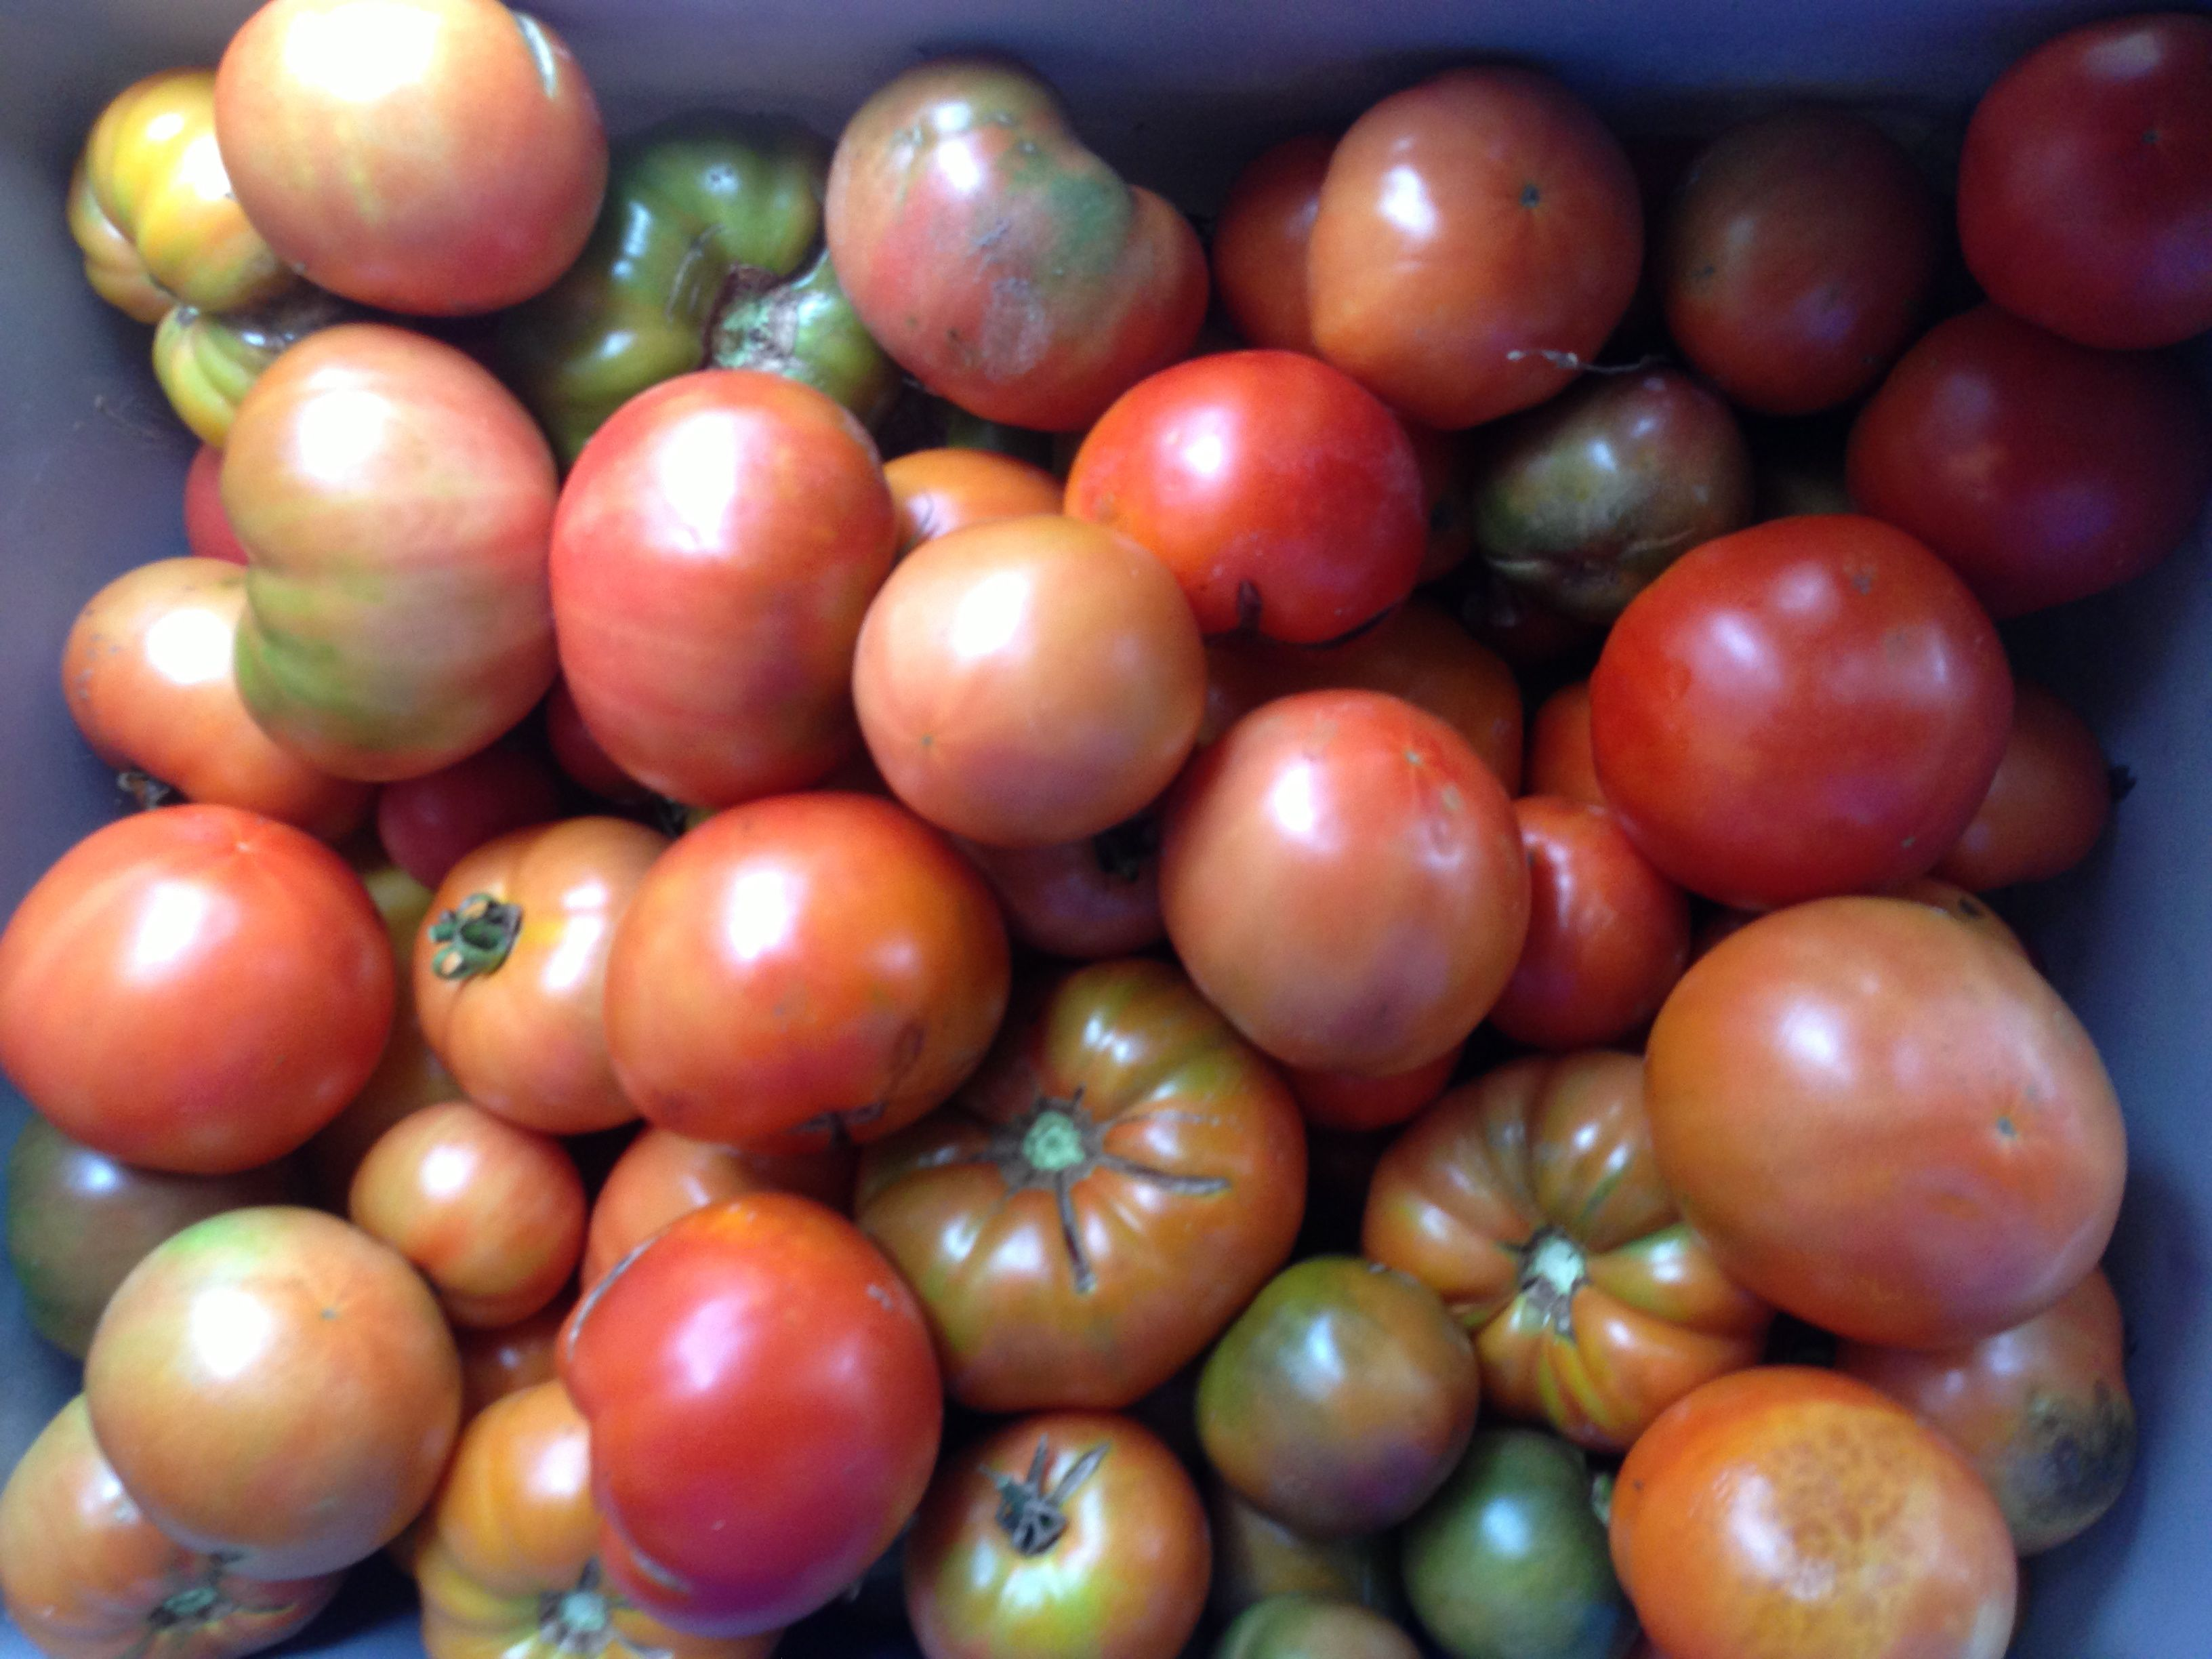 Heirloom Tomatoes at Tamarack Farm